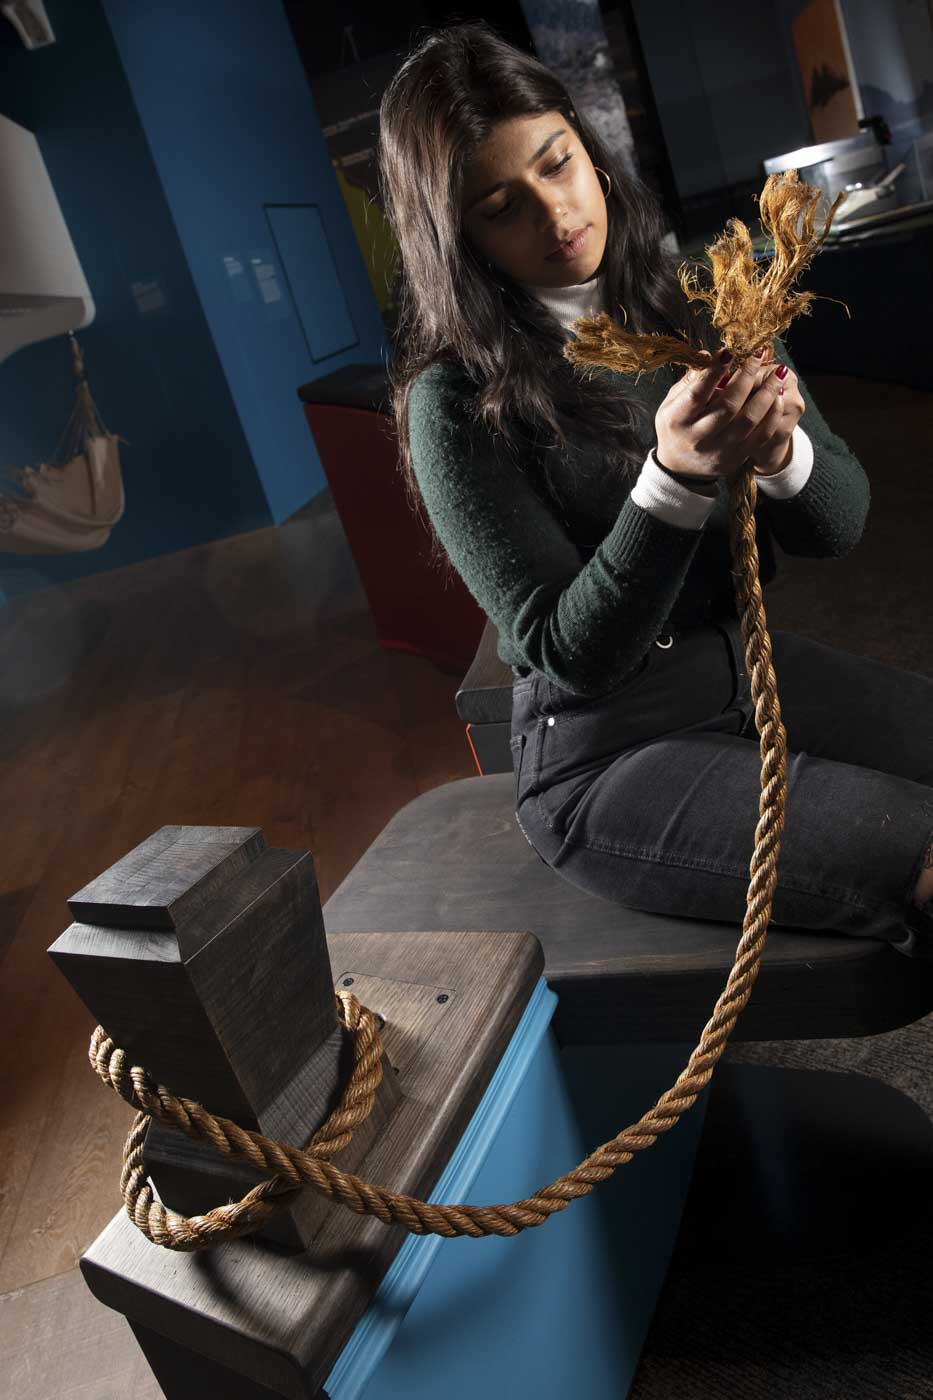 A woman sits in an exhibition space, holding a thick rope in front of her. The rope is unspliced at the end. - click to view larger image